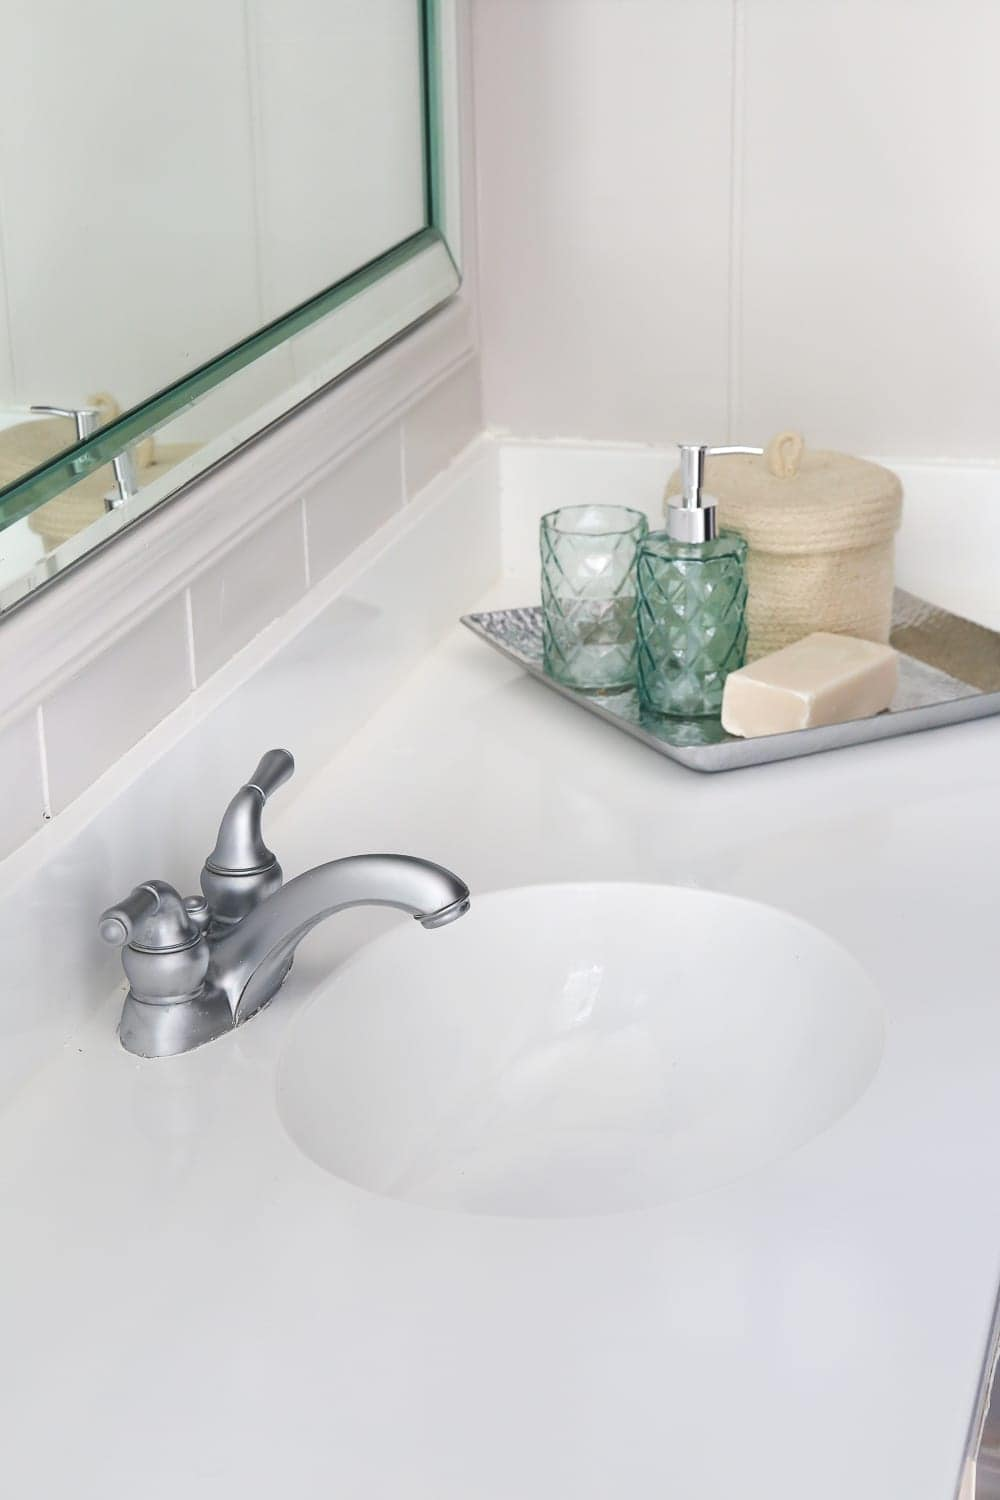 Sink with countertop for bathroom